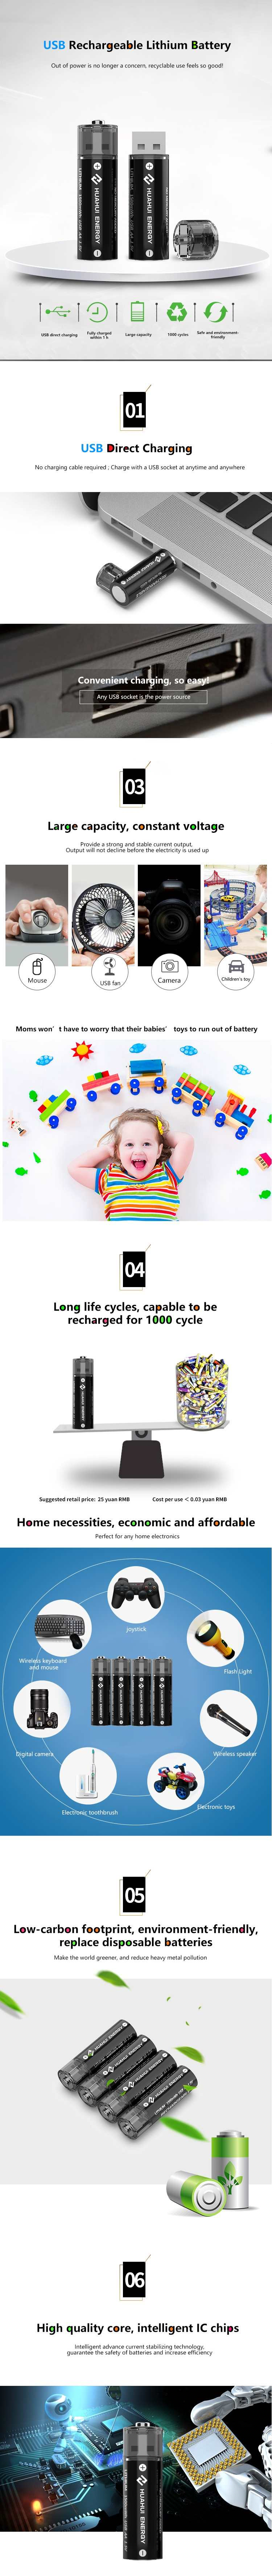 A large marketing image providing additional information about the product HUAHUI Two AA USB Rechargeable Lithium 1500mWh Battery Pack - Additional alt info not provided